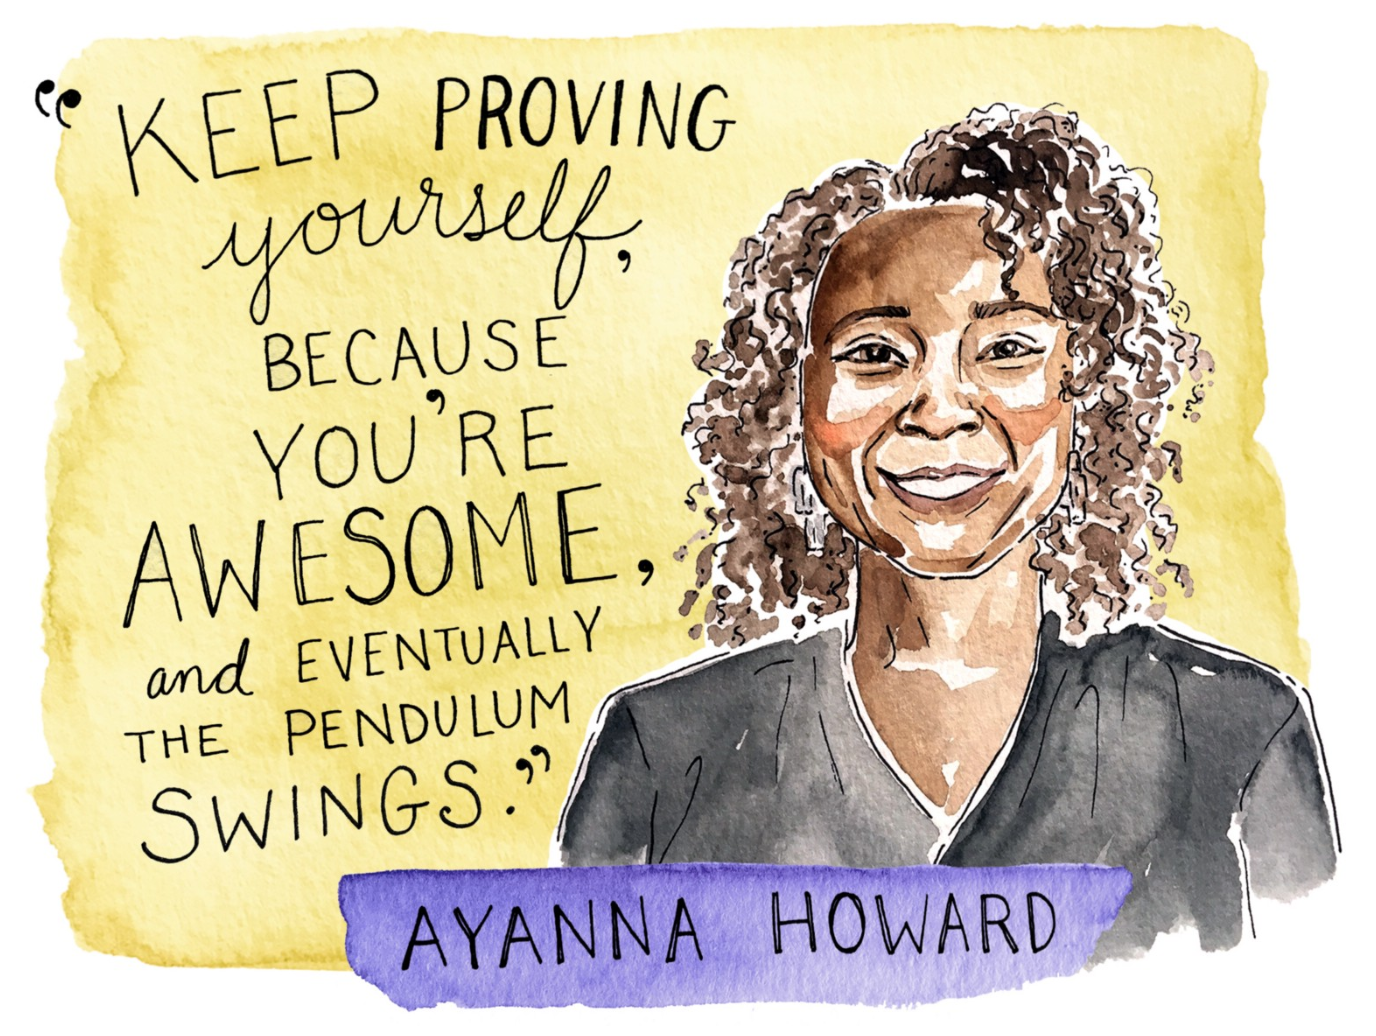 """Ayanna Howard    Ayanna Howard is a lot of things: a successful entrepreneur, a pioneering roboticist, the head of Georgia Tech's School of Interactive Computing, and one of  Business Insider's """"Most Powerful Women Engineers."""" These days, she's working to design a cutting-edge robot that can help children with special needs live healthier, better lives."""